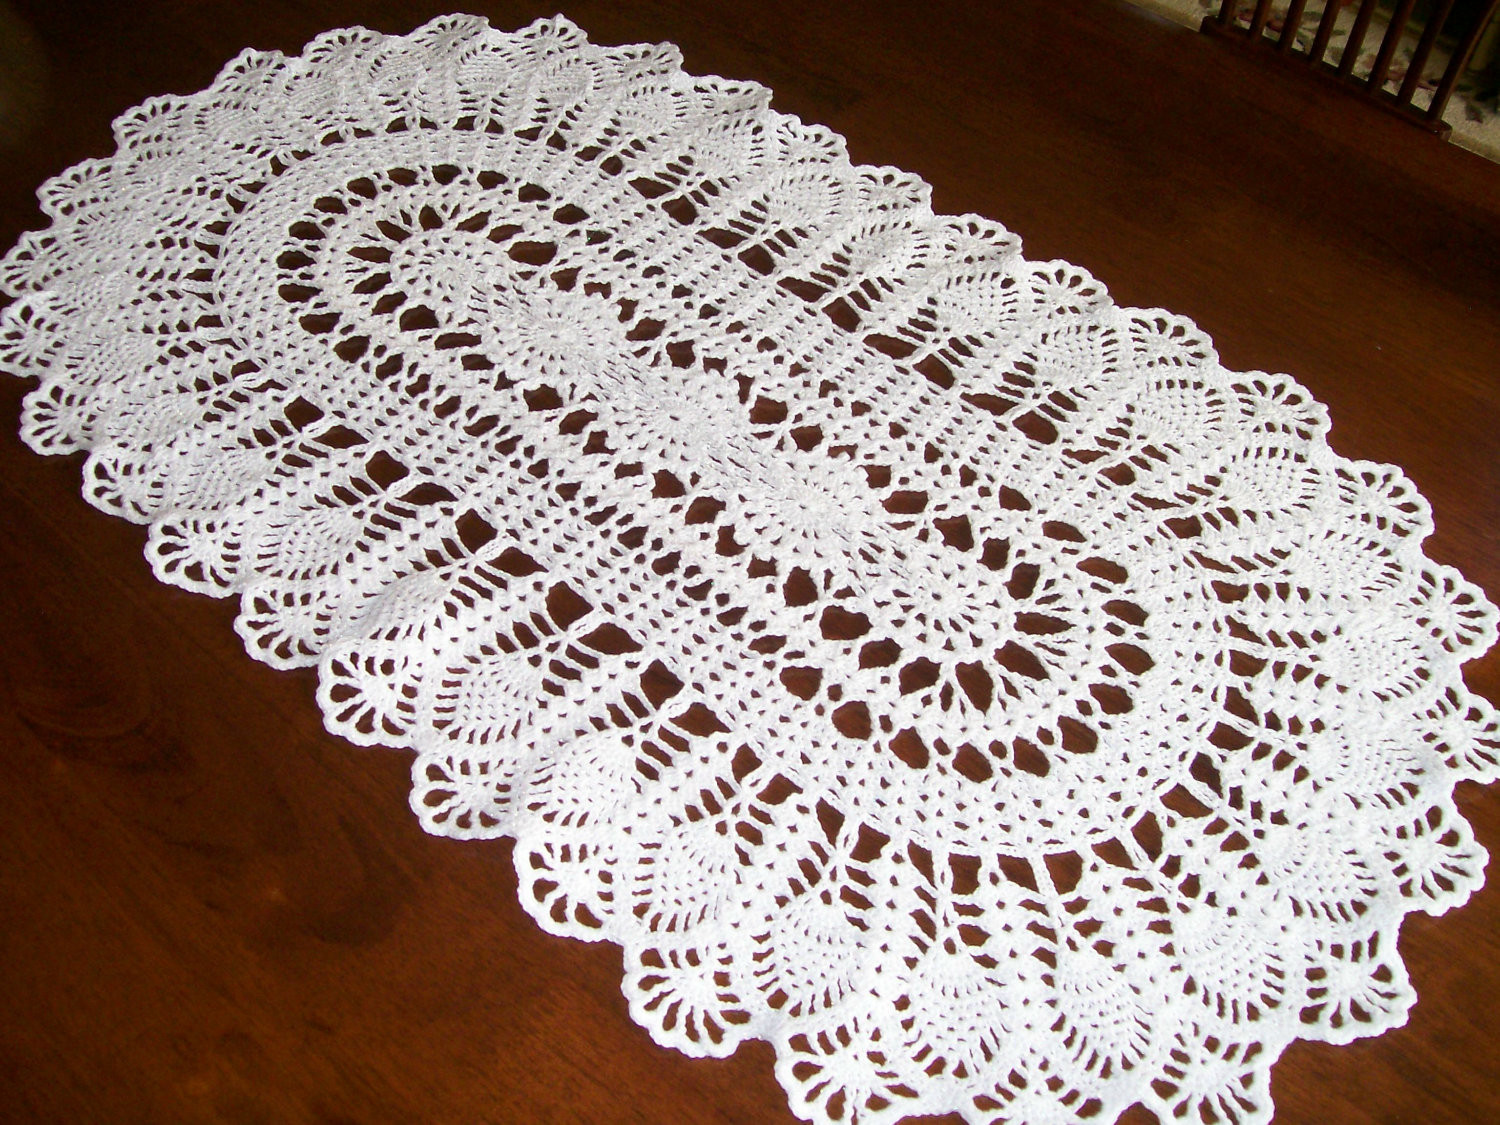 Crochet Runner Best Of Crochet White Silver Sparkle Doily Table Runner Free Of Fresh 45 Ideas Crochet Runner